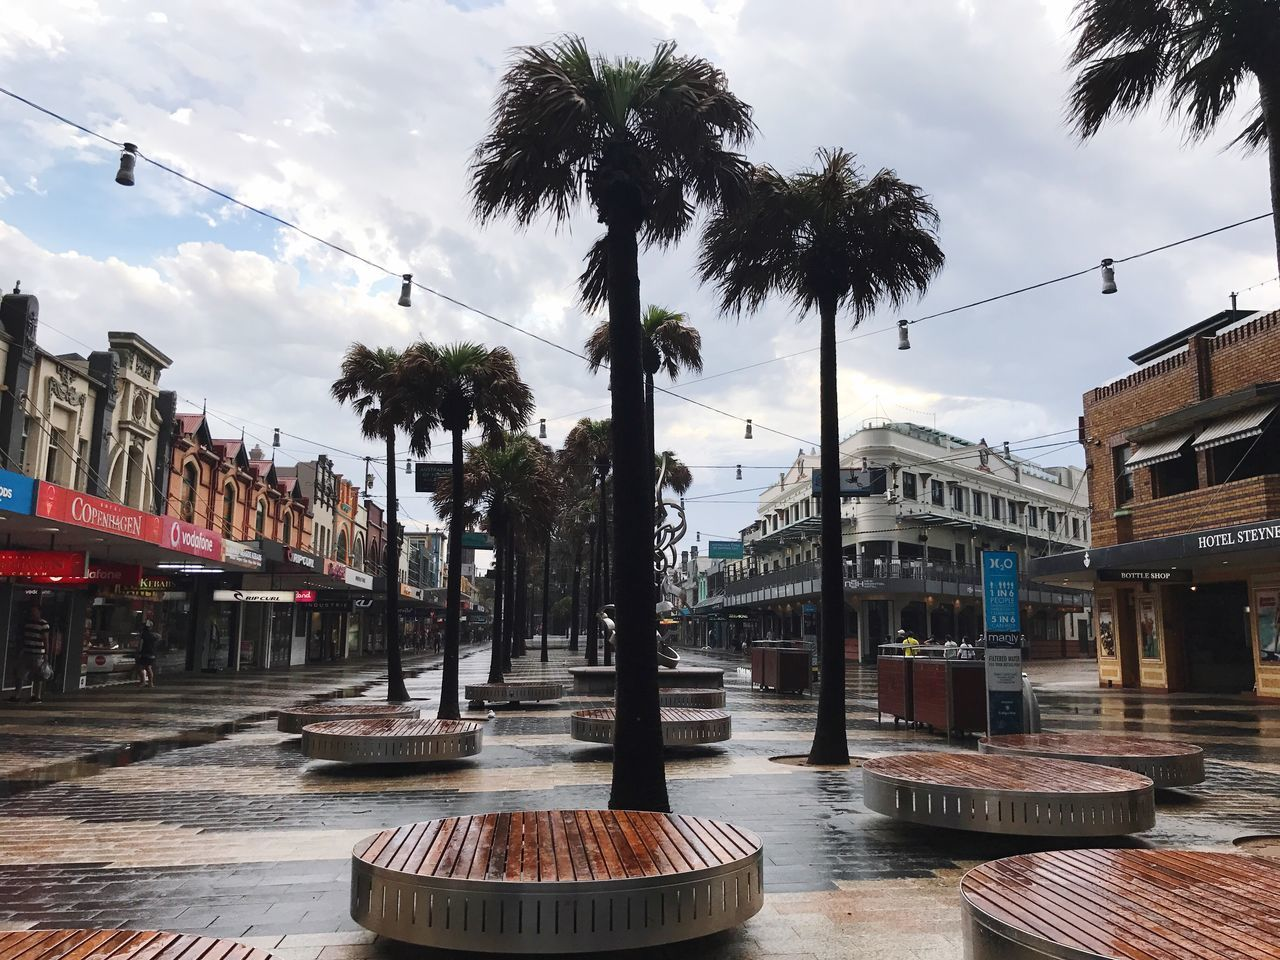 Tree Palm Tree Building Exterior Built Structure City Architecture Street Sky Outdoors Fountain Day No People Cloud - Sky Water Nature